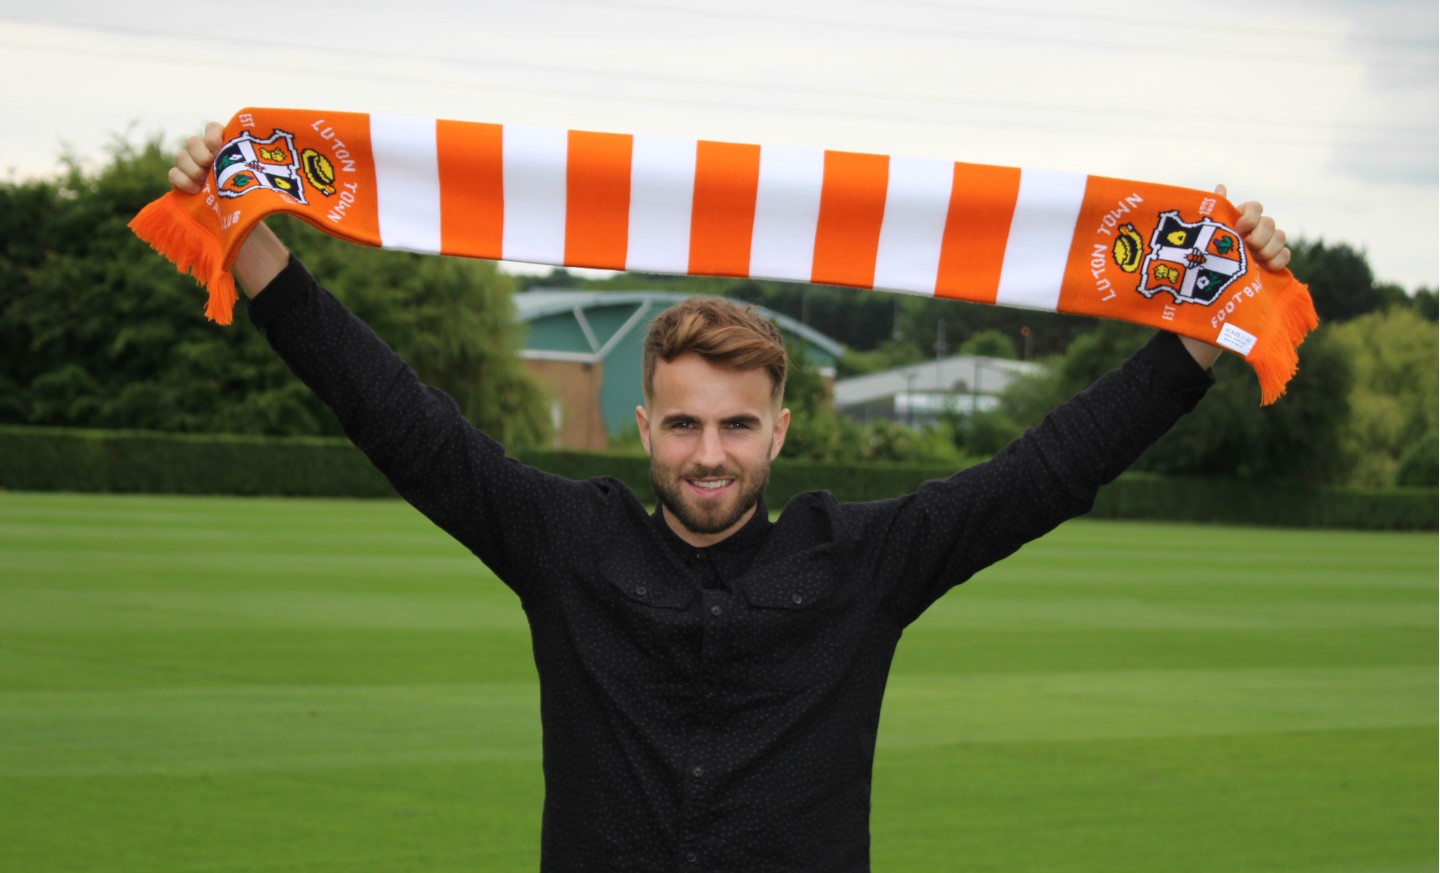 Andrew Shinnie holds a Hatters scarf aloft at The Brache training ground